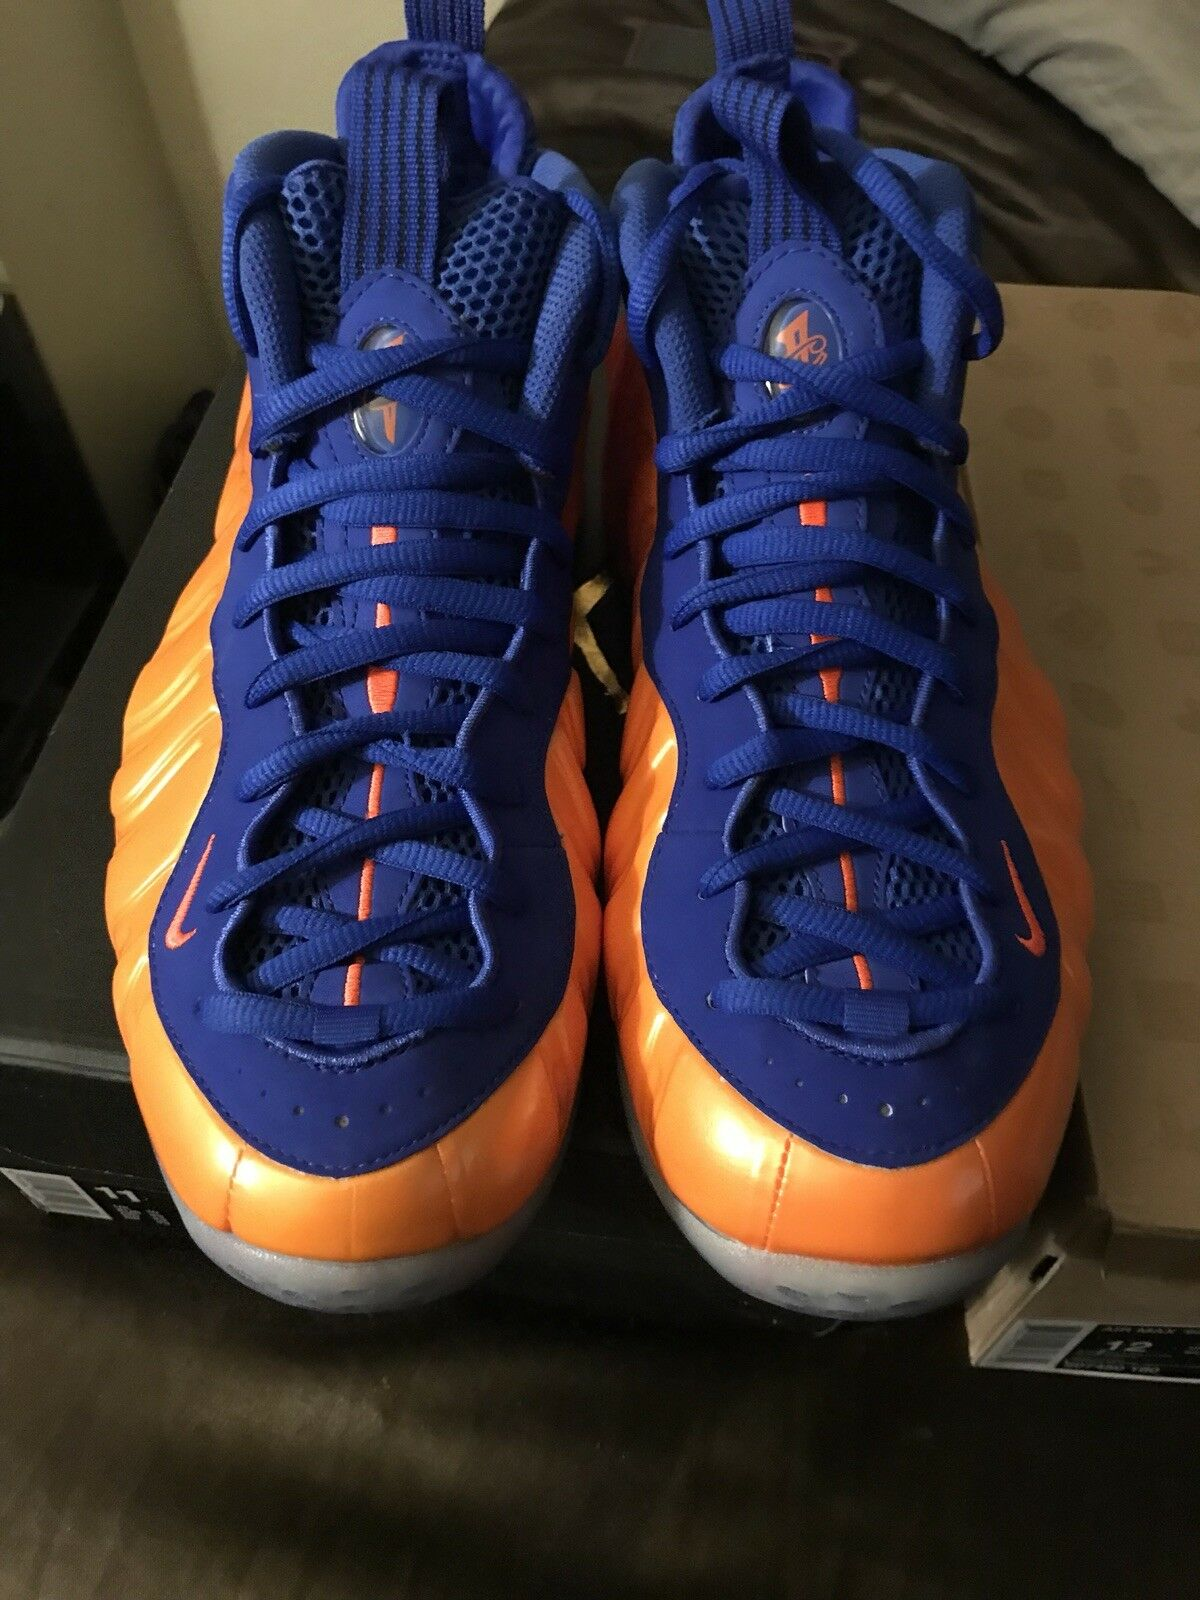 nike air foamposites foamposites foamposites knicks taille 11 720dce